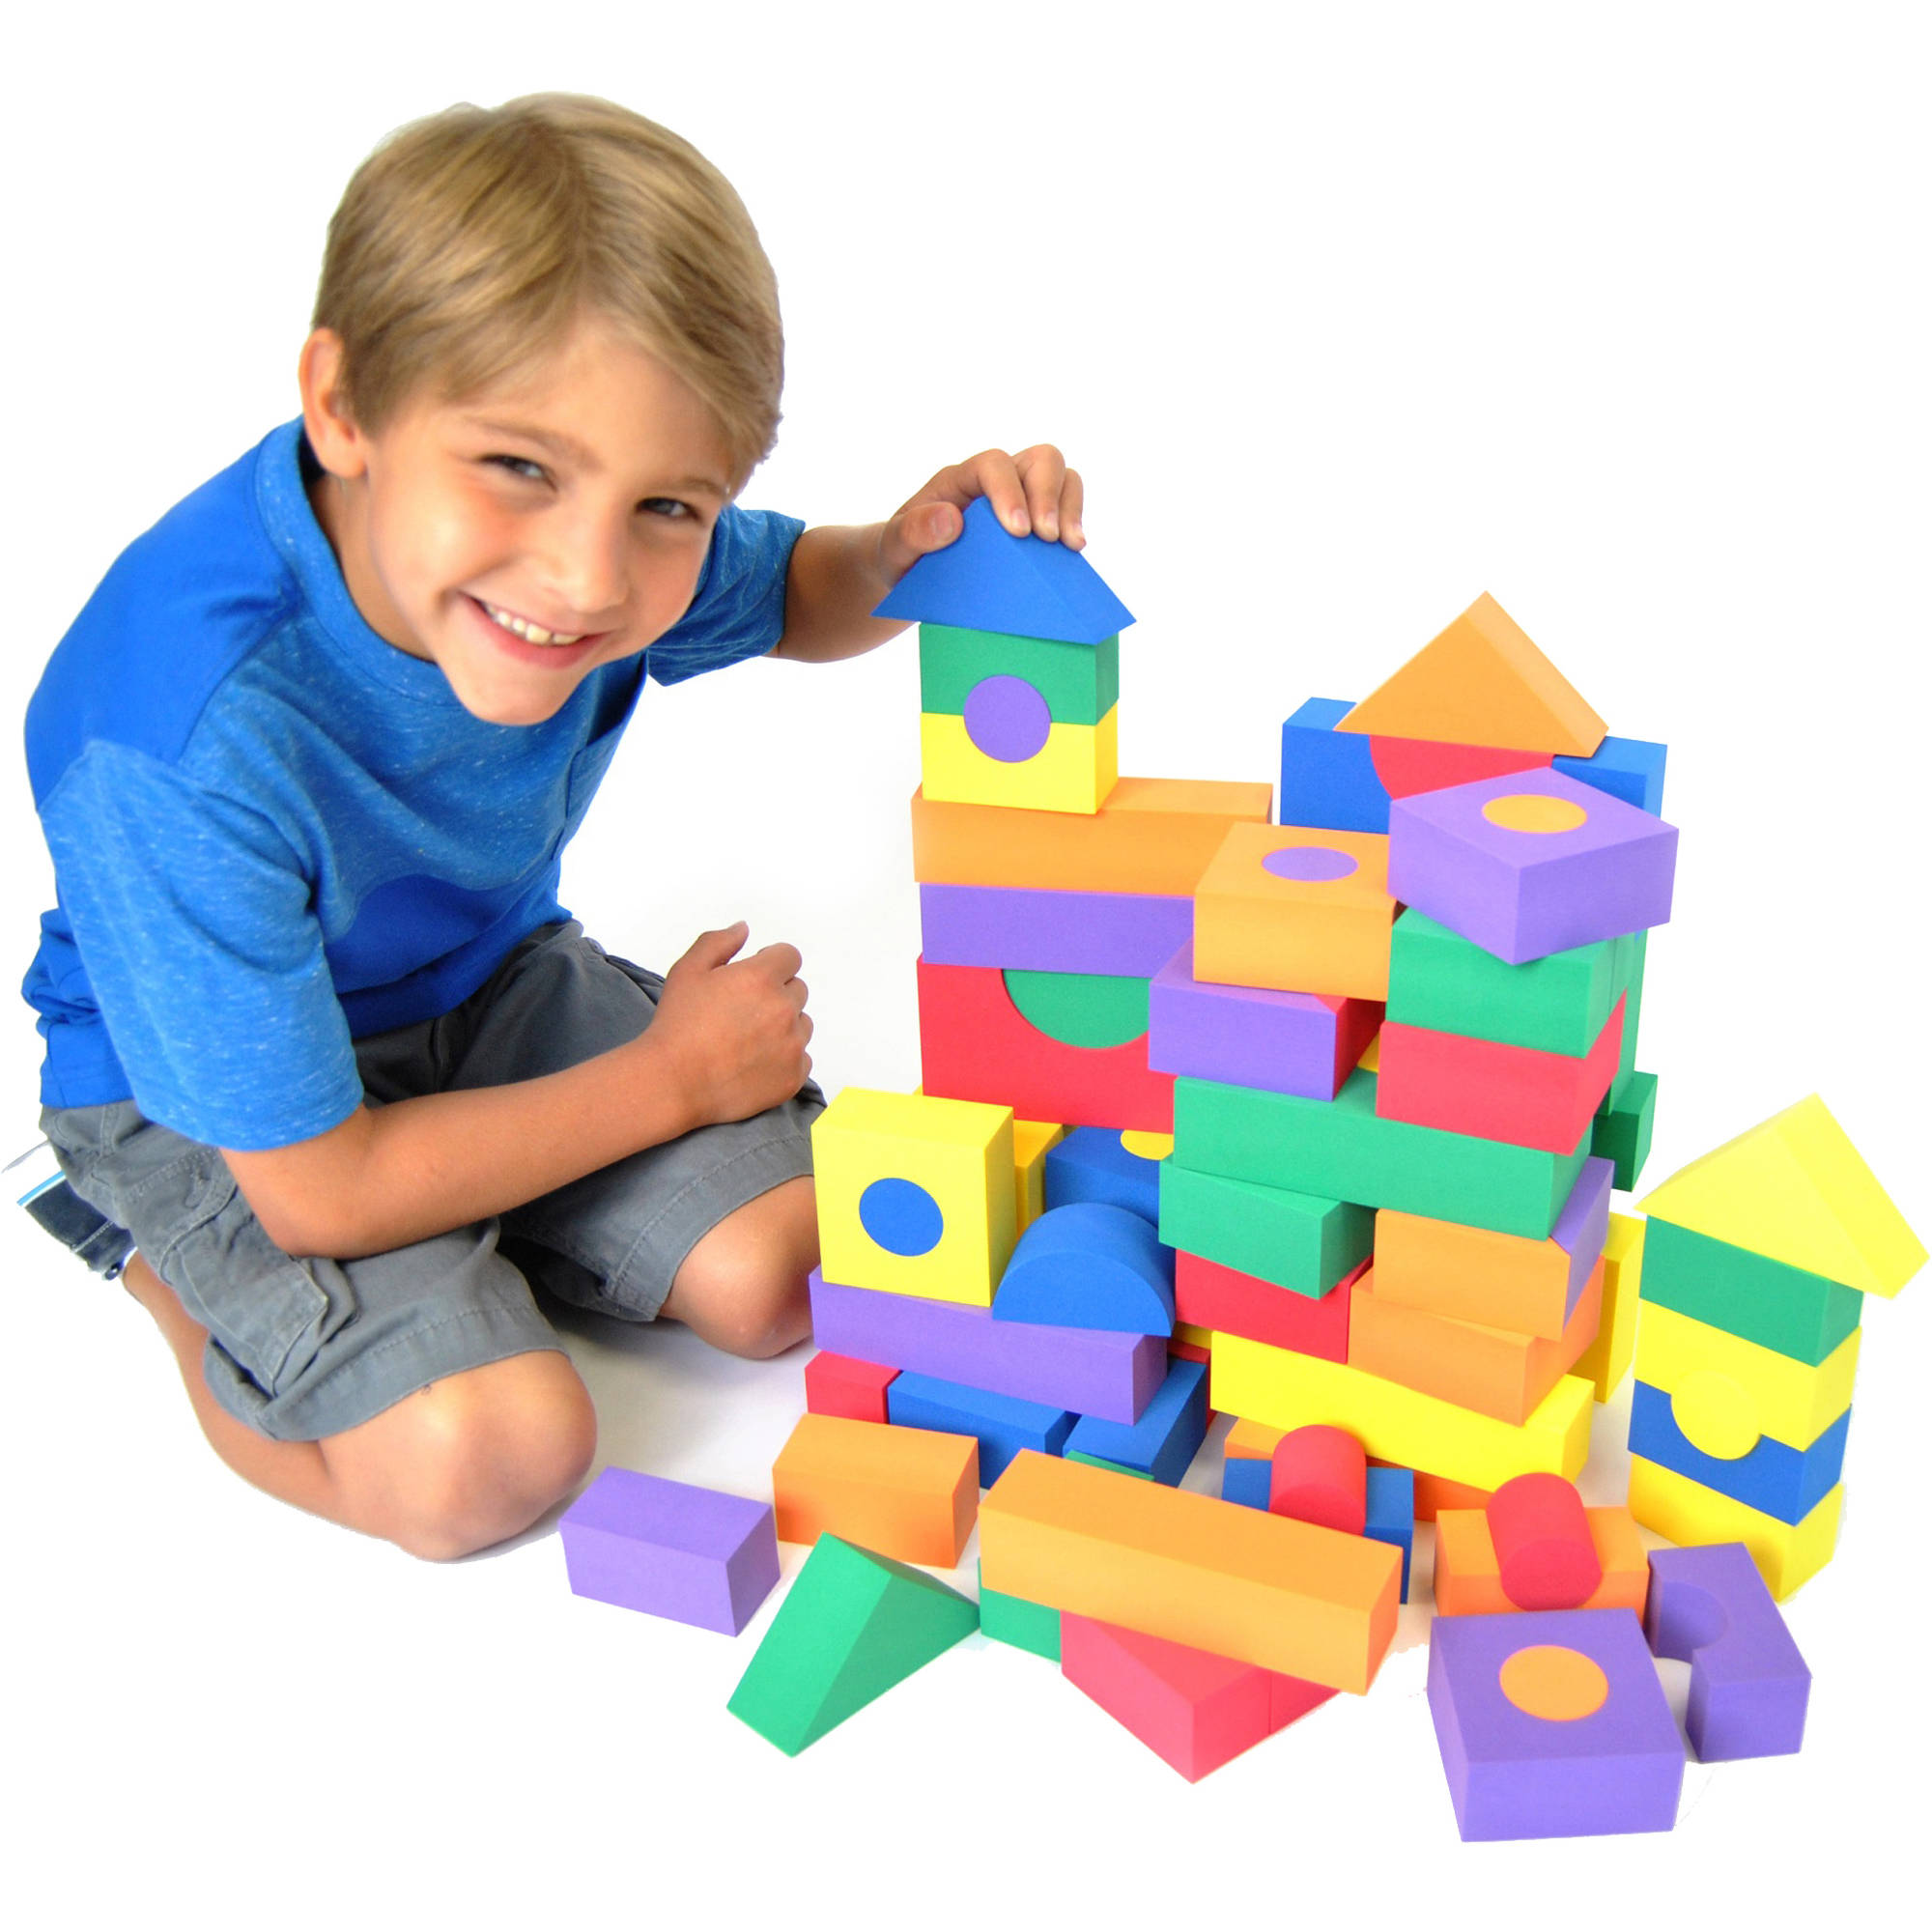 Non-Toxic Foam Wonder Blocks for Children 100pk